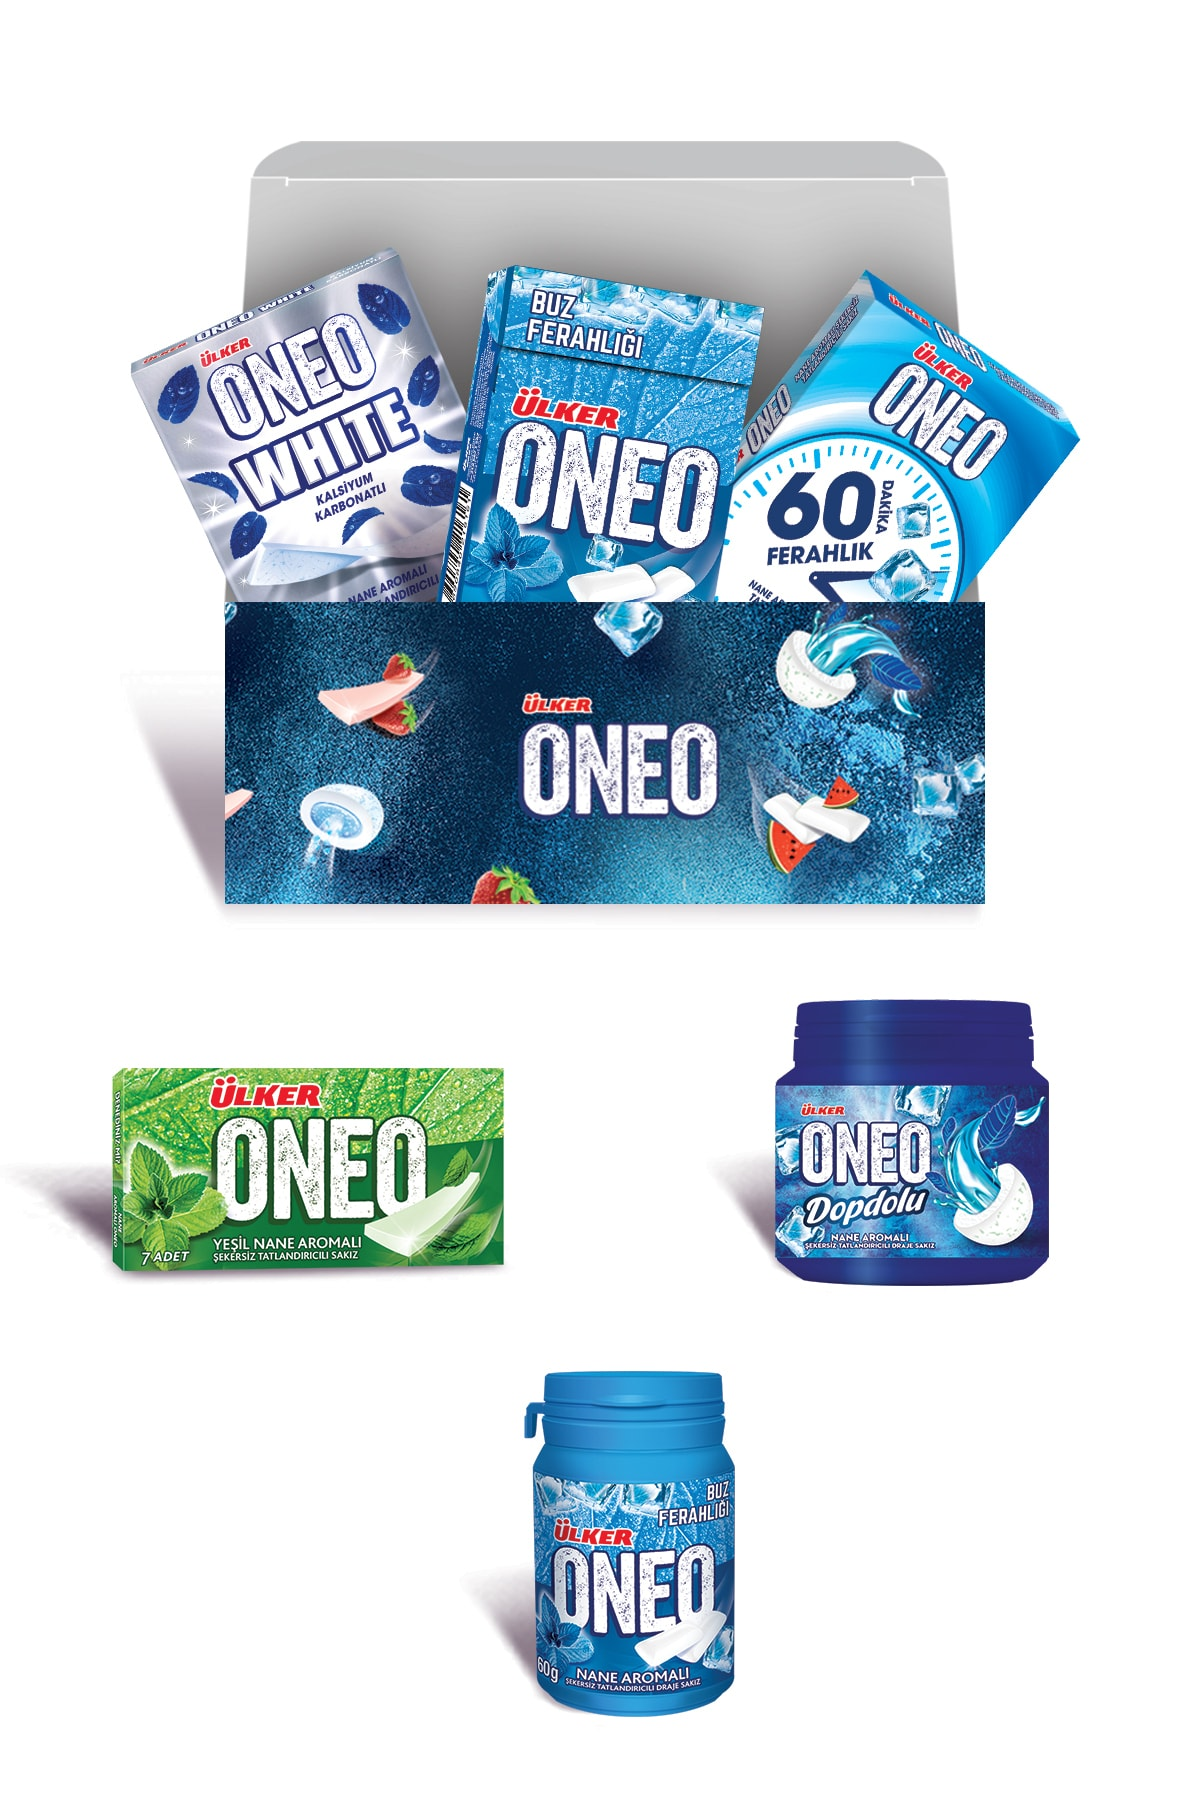 Ülker Oneo is 'going well on the road, instantly refreshing' Mint Package      FREE SHİPPİNG